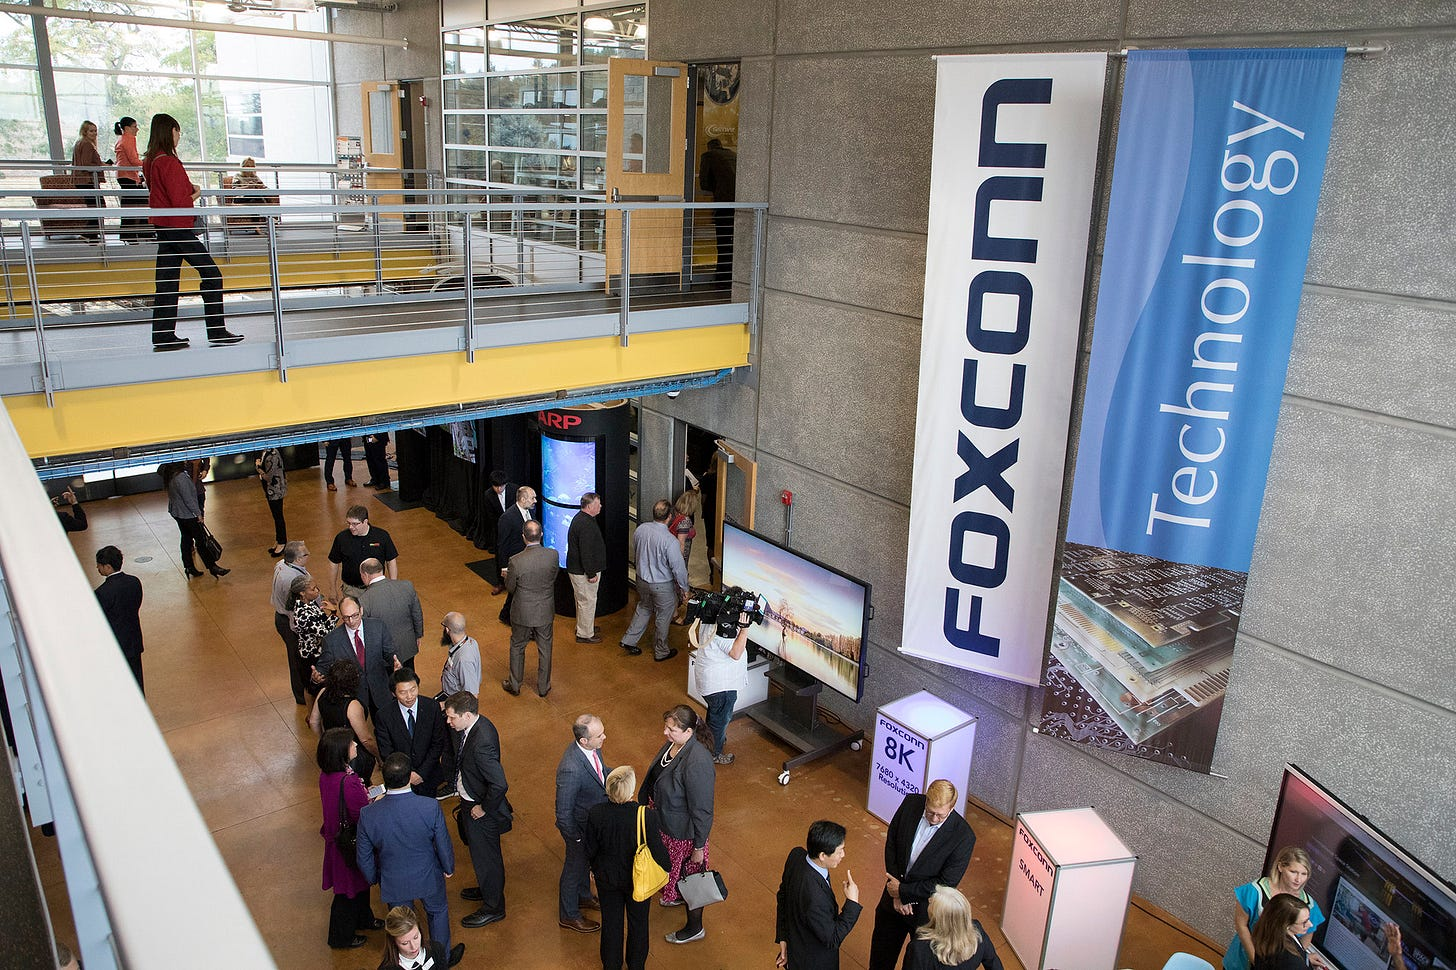 Foxconn banner on wall